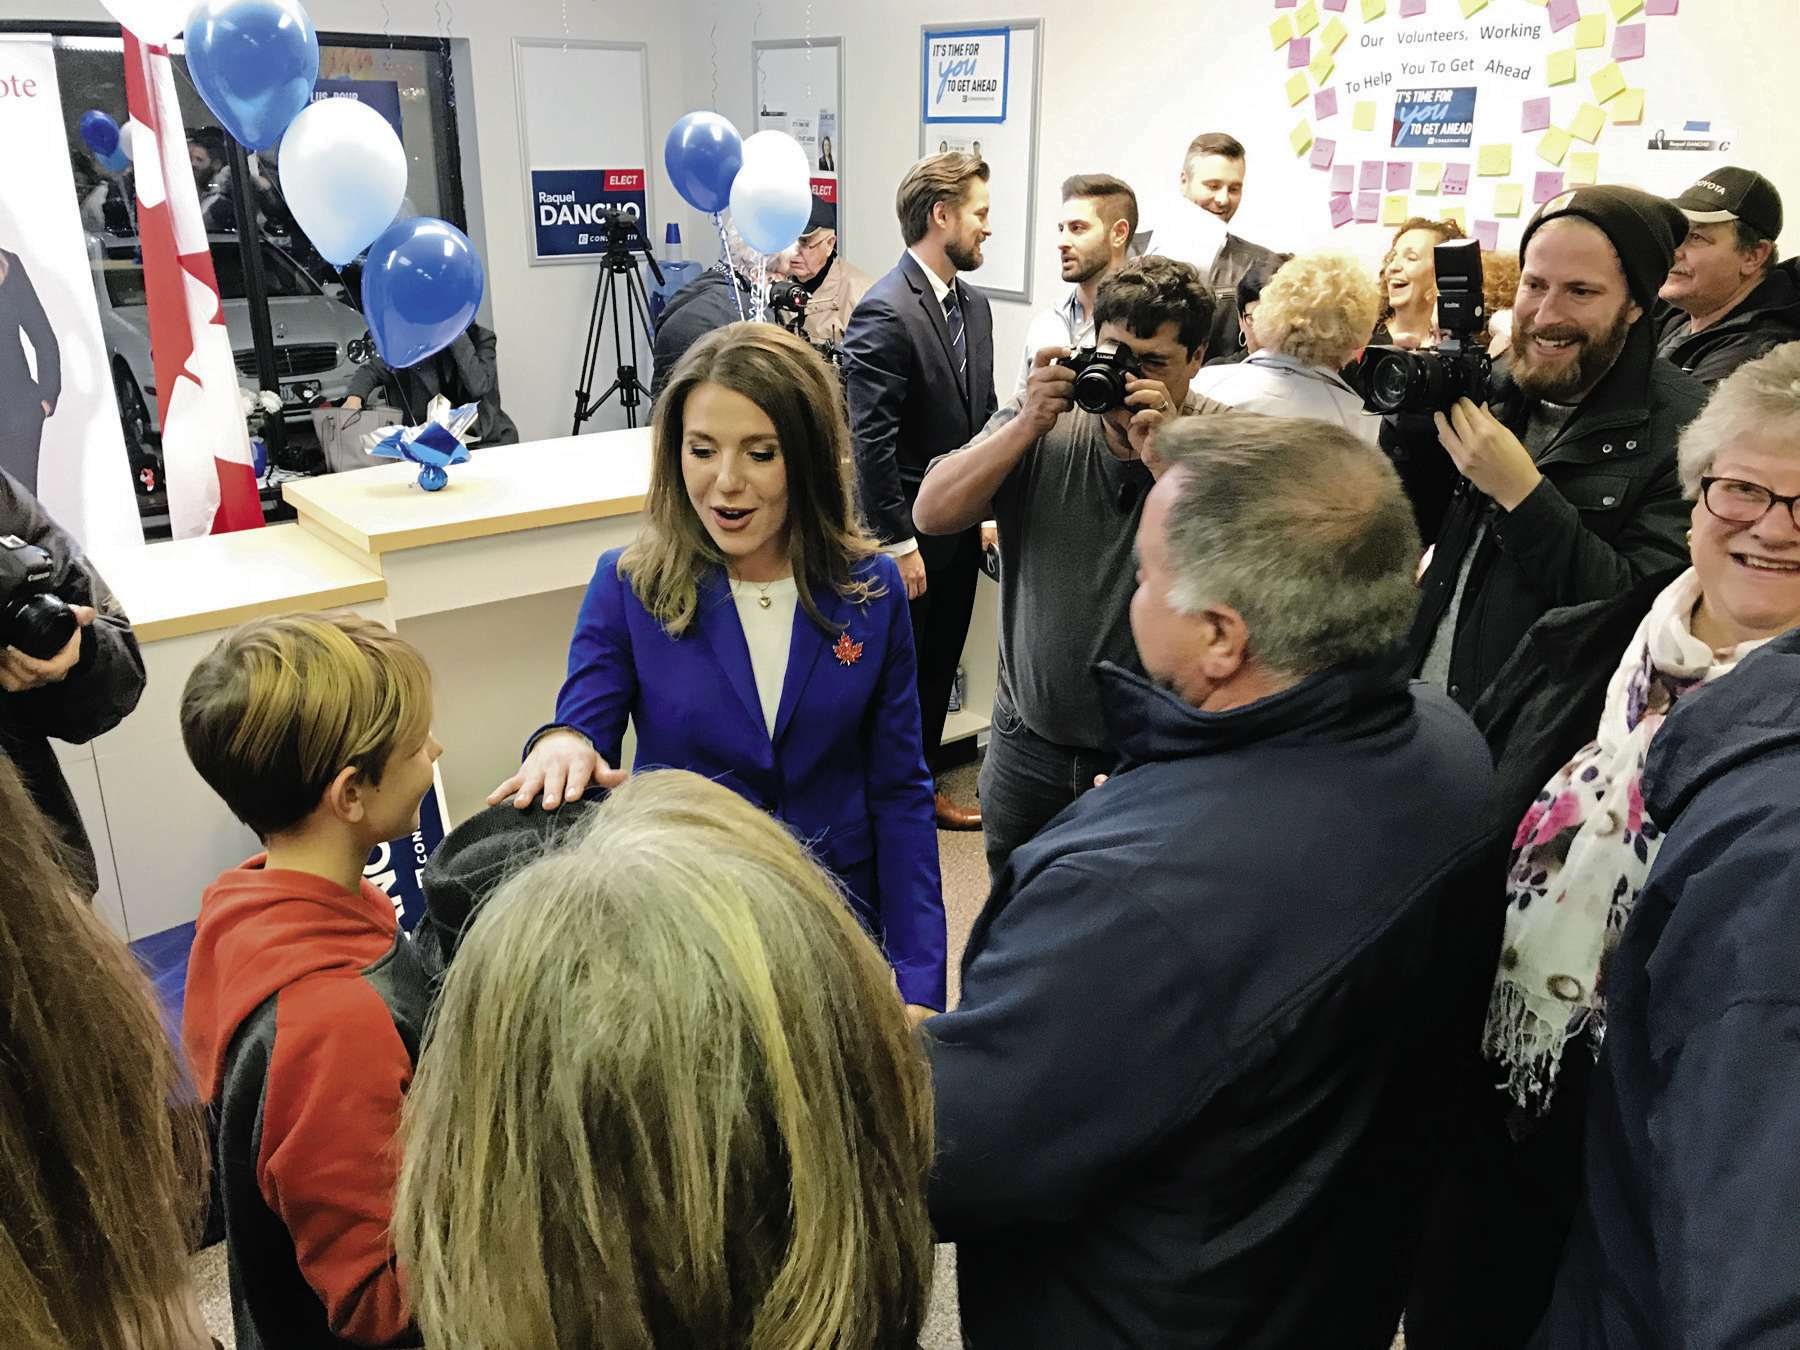 Kildonan-St. Paul MP-elect Raquel Dancho, a Conservative, accepts congratulations from some young supporters at her campaign headquarters on election night.